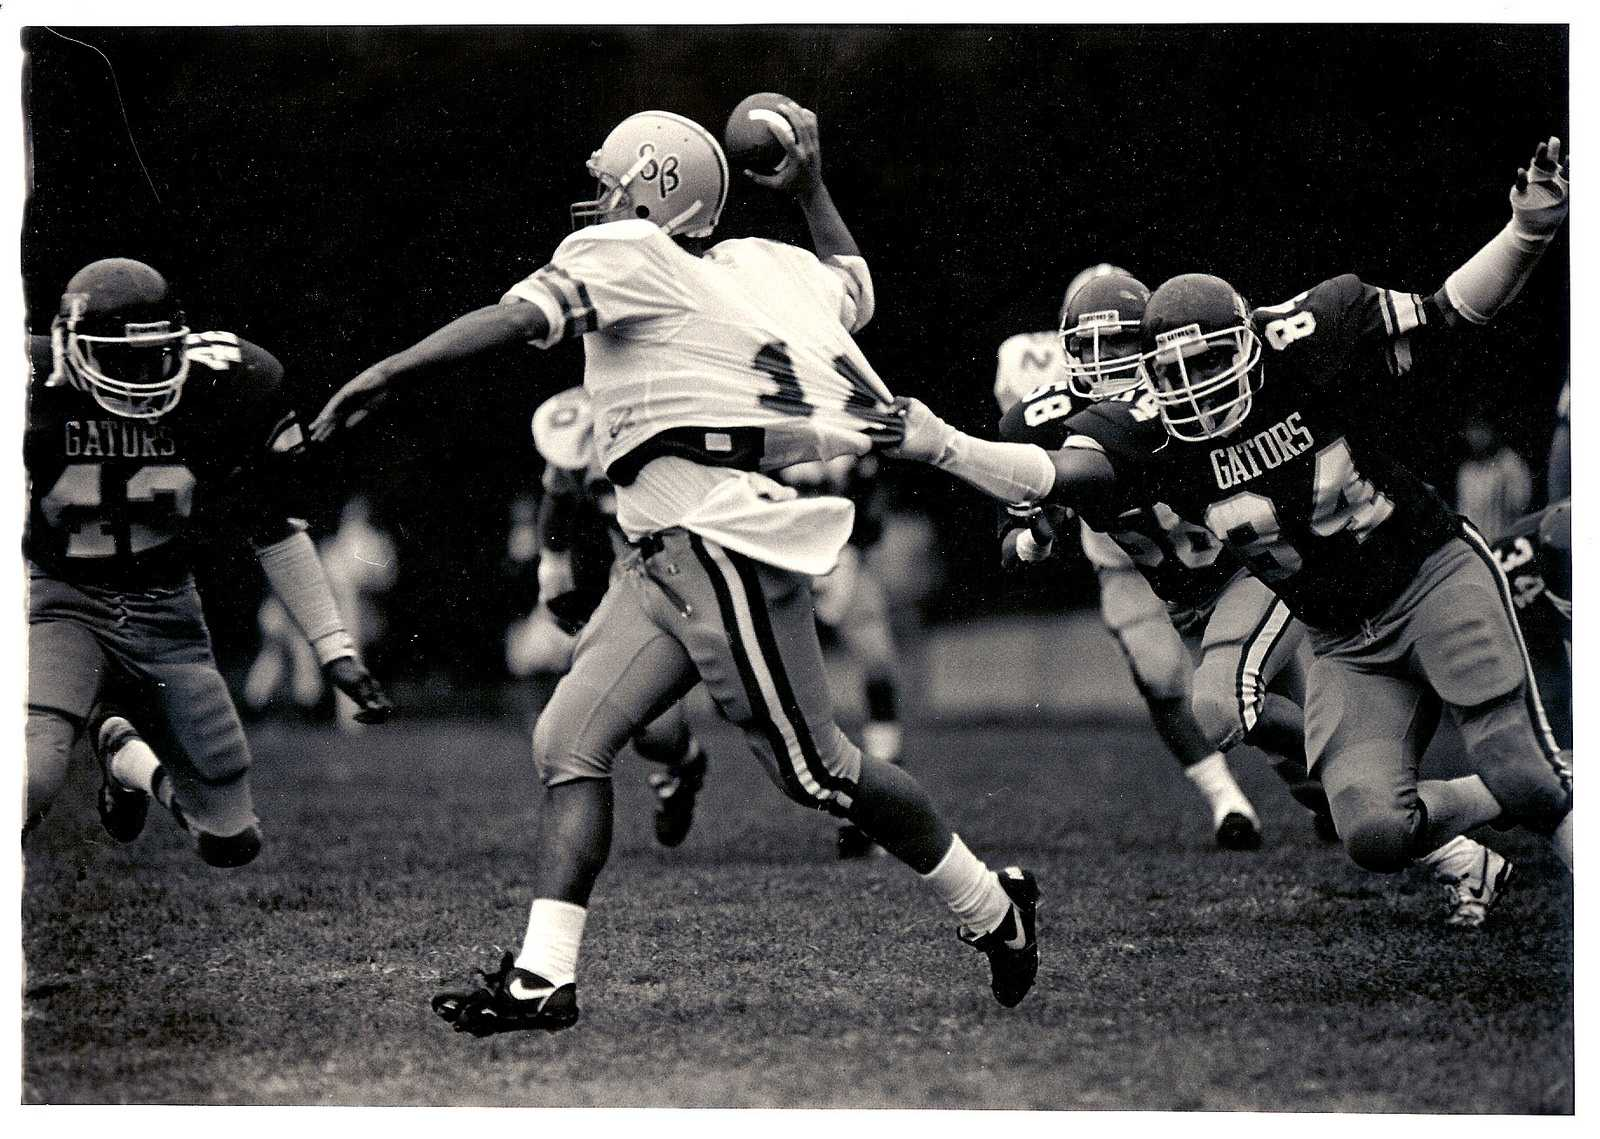 Defensive end Harry Overstreet II (84), SF State alumnus and former Gator football player tackles UC Santa Barbara Gauchos quarterback at Cox Stadium on Aug. 24, 1988. SF State lost with a final score of 6-16. (Photo Courtesy of Harry Overstreet II)